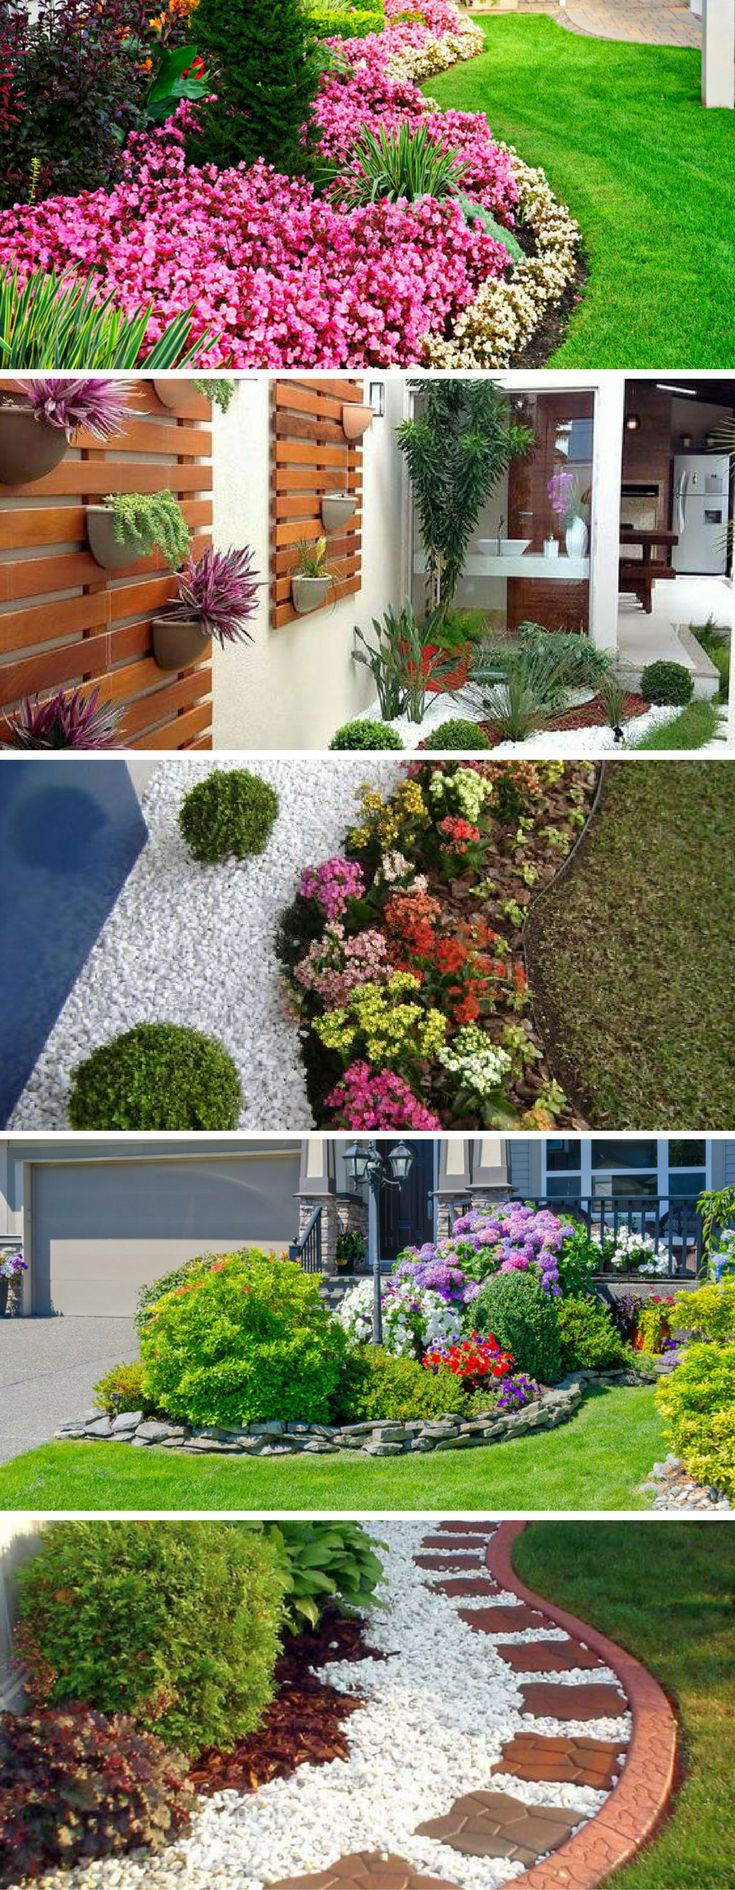 Amazing Landscaping Ideas For Small Budgets: Best 25+ Landscaping Around House Ideas On Pinterest